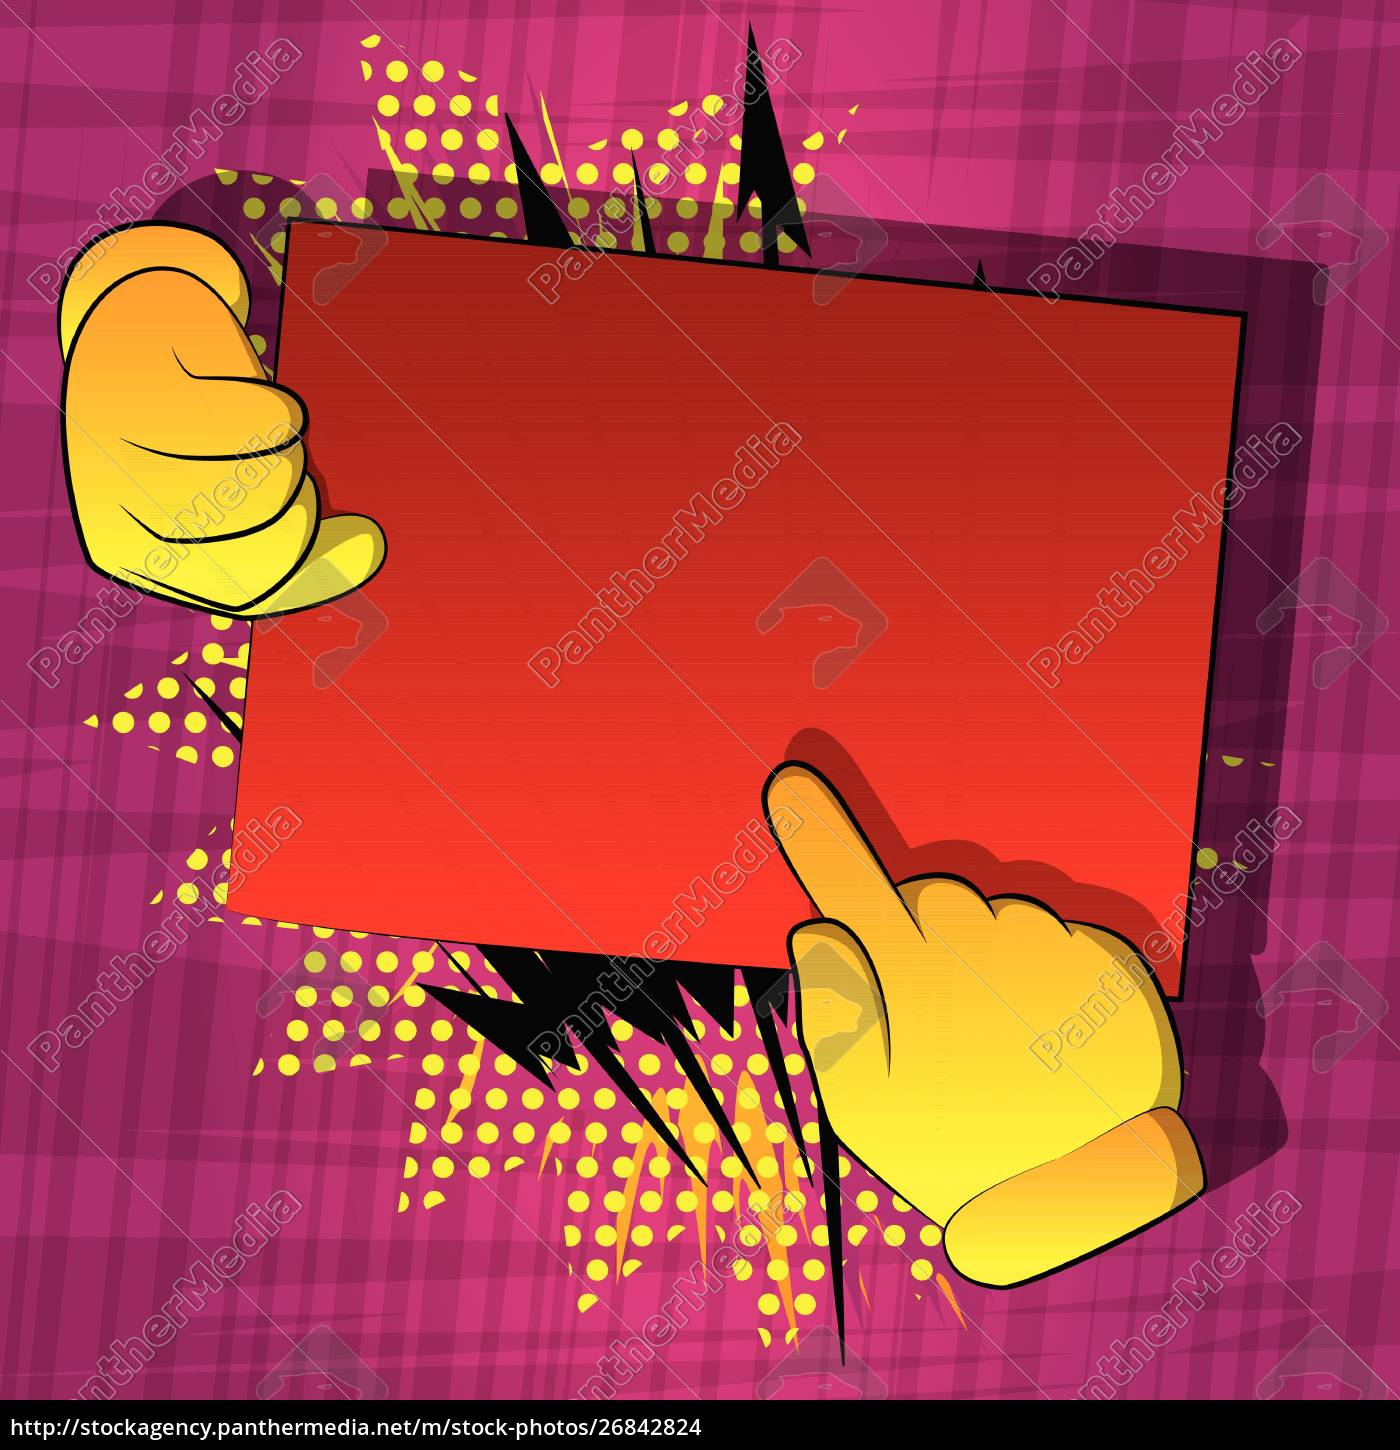 cartoon, hands, holding, paper, and, pointing - 26842824